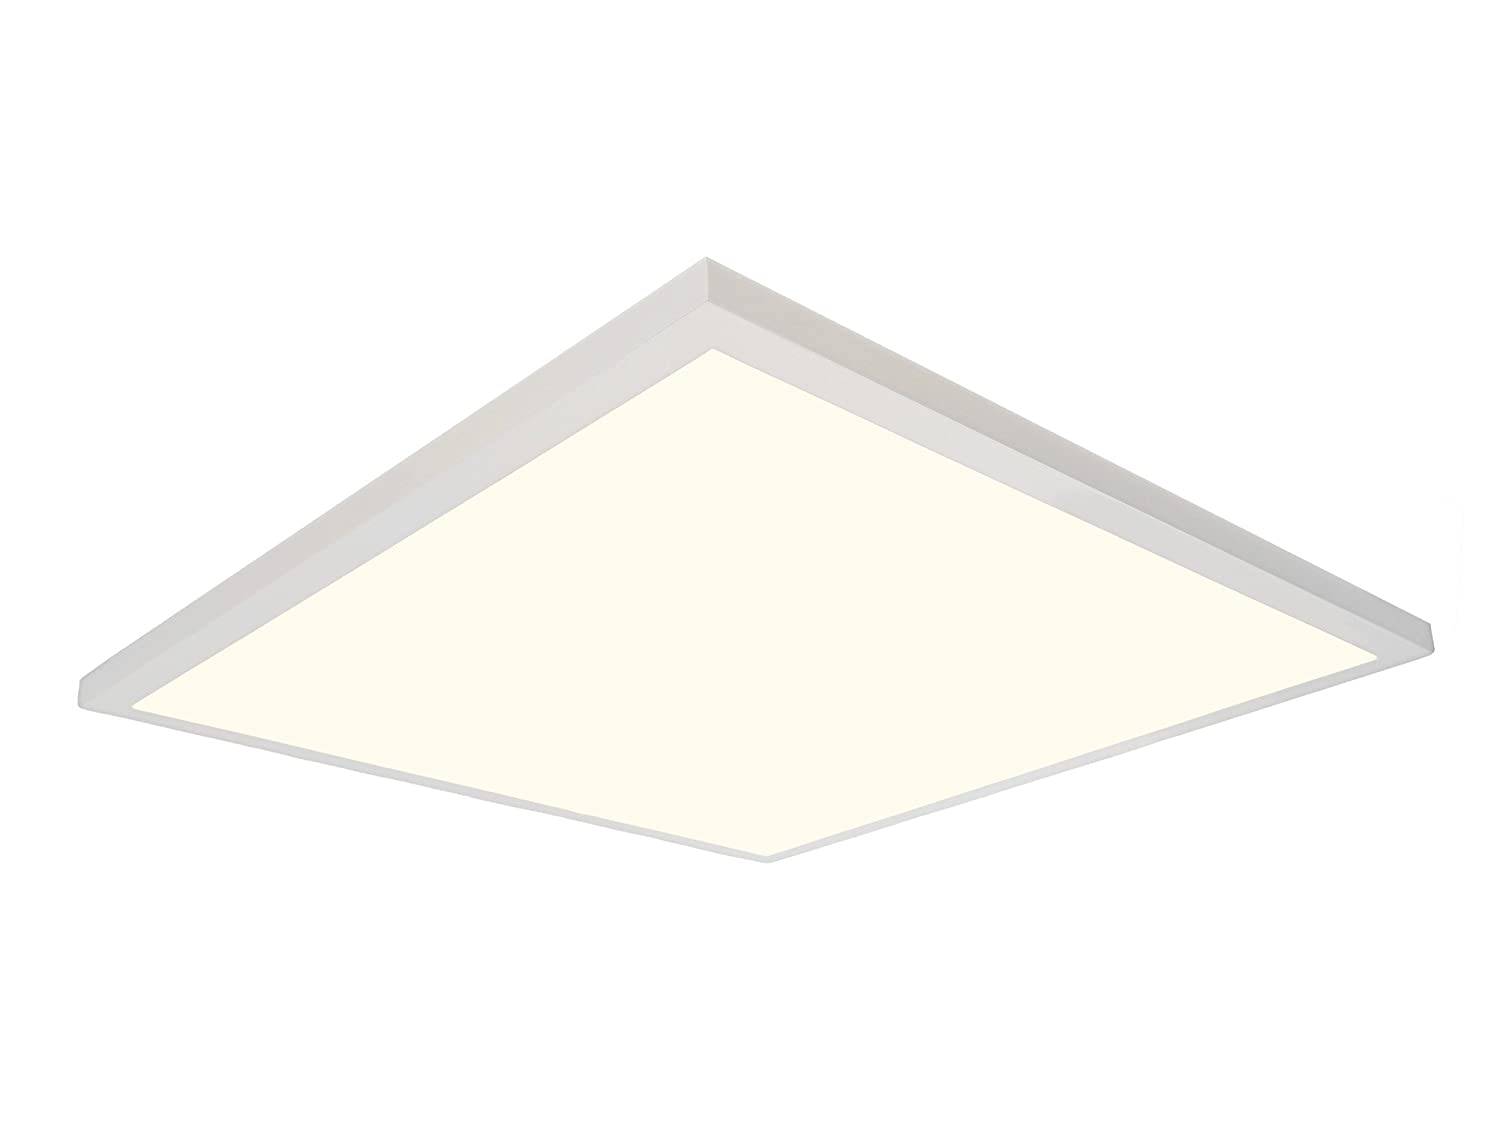 Led panel 2 x 2 ultra thin edge lit 40w flat light residential flushmount surface mount commercial drop ceiling fixture 4000 lm 2700 cct 2x2 white